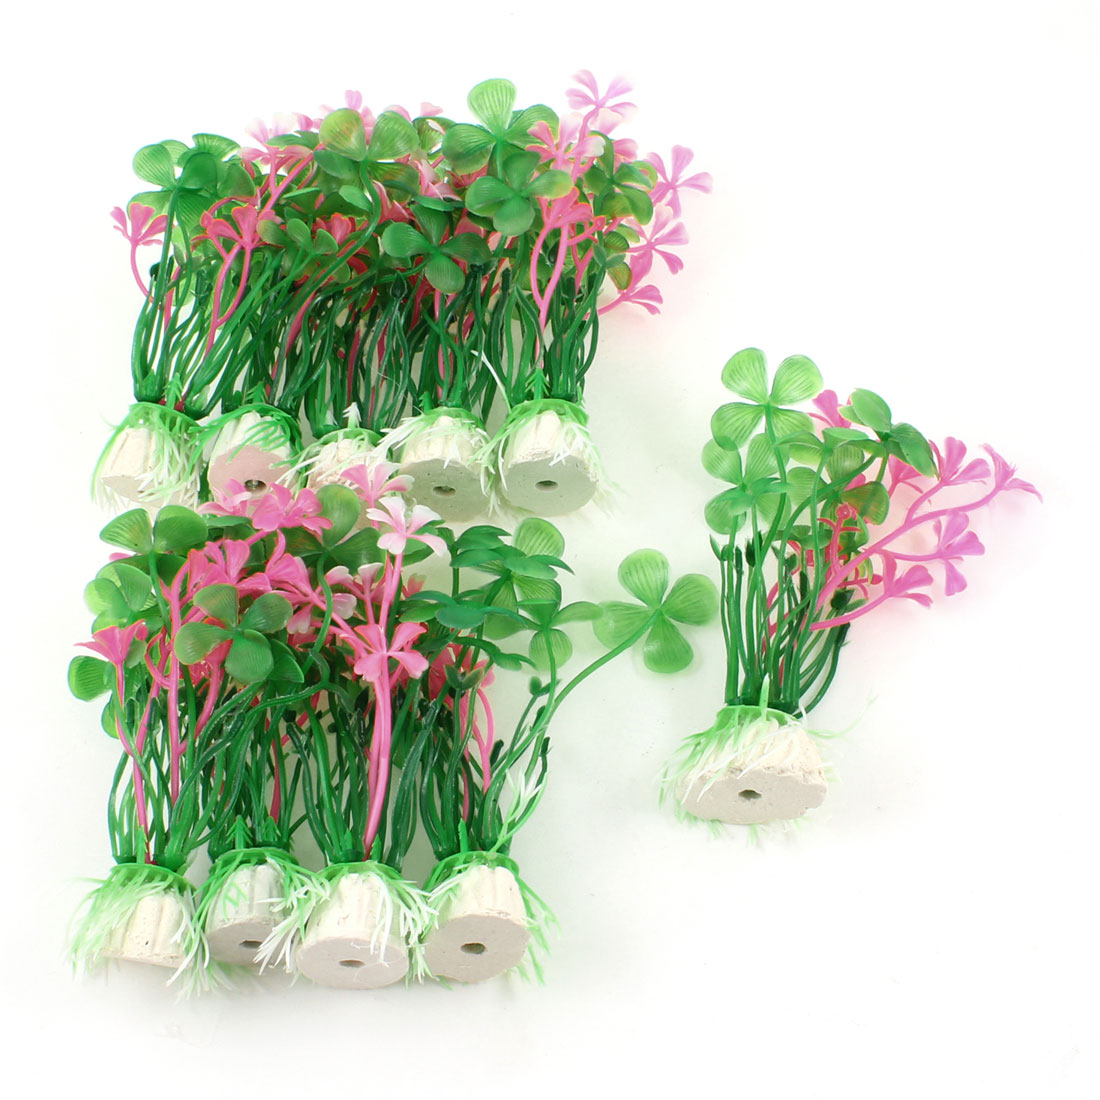 10-Pcs-3-9-Green-Pink-Plastic-Manmade-Grass-Plants-for-Aquarium-Fish-Tank